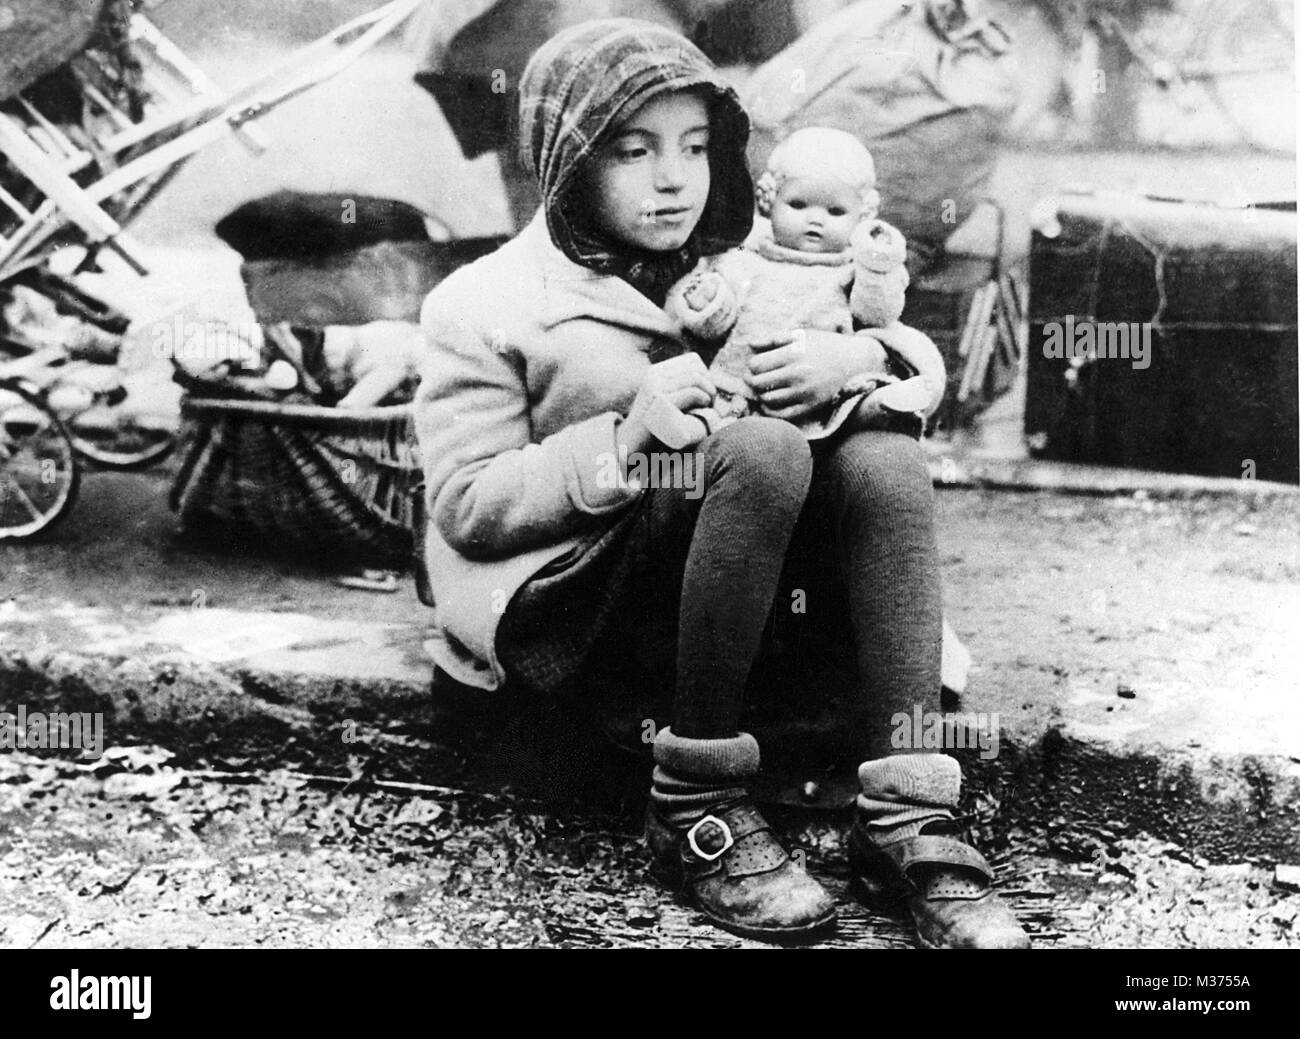 A girl from a refugee trek, with her doll in her arms, in the turmoil of the post-war era.   usage worldwide - Stock Image